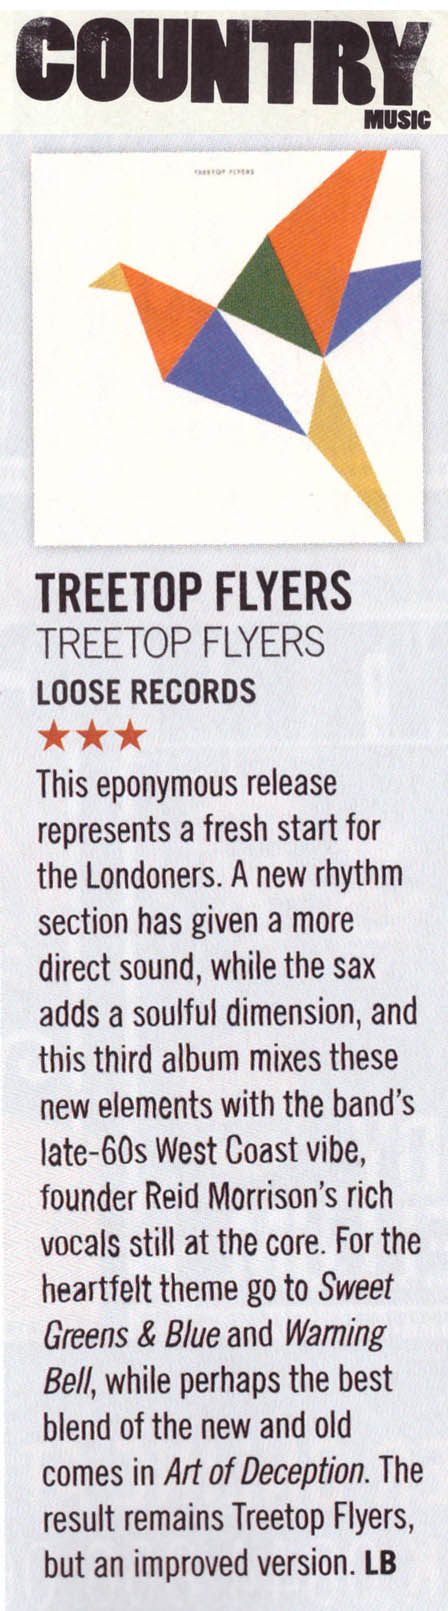 Treetop Flyers - Country Music Magazine - Sep 2018